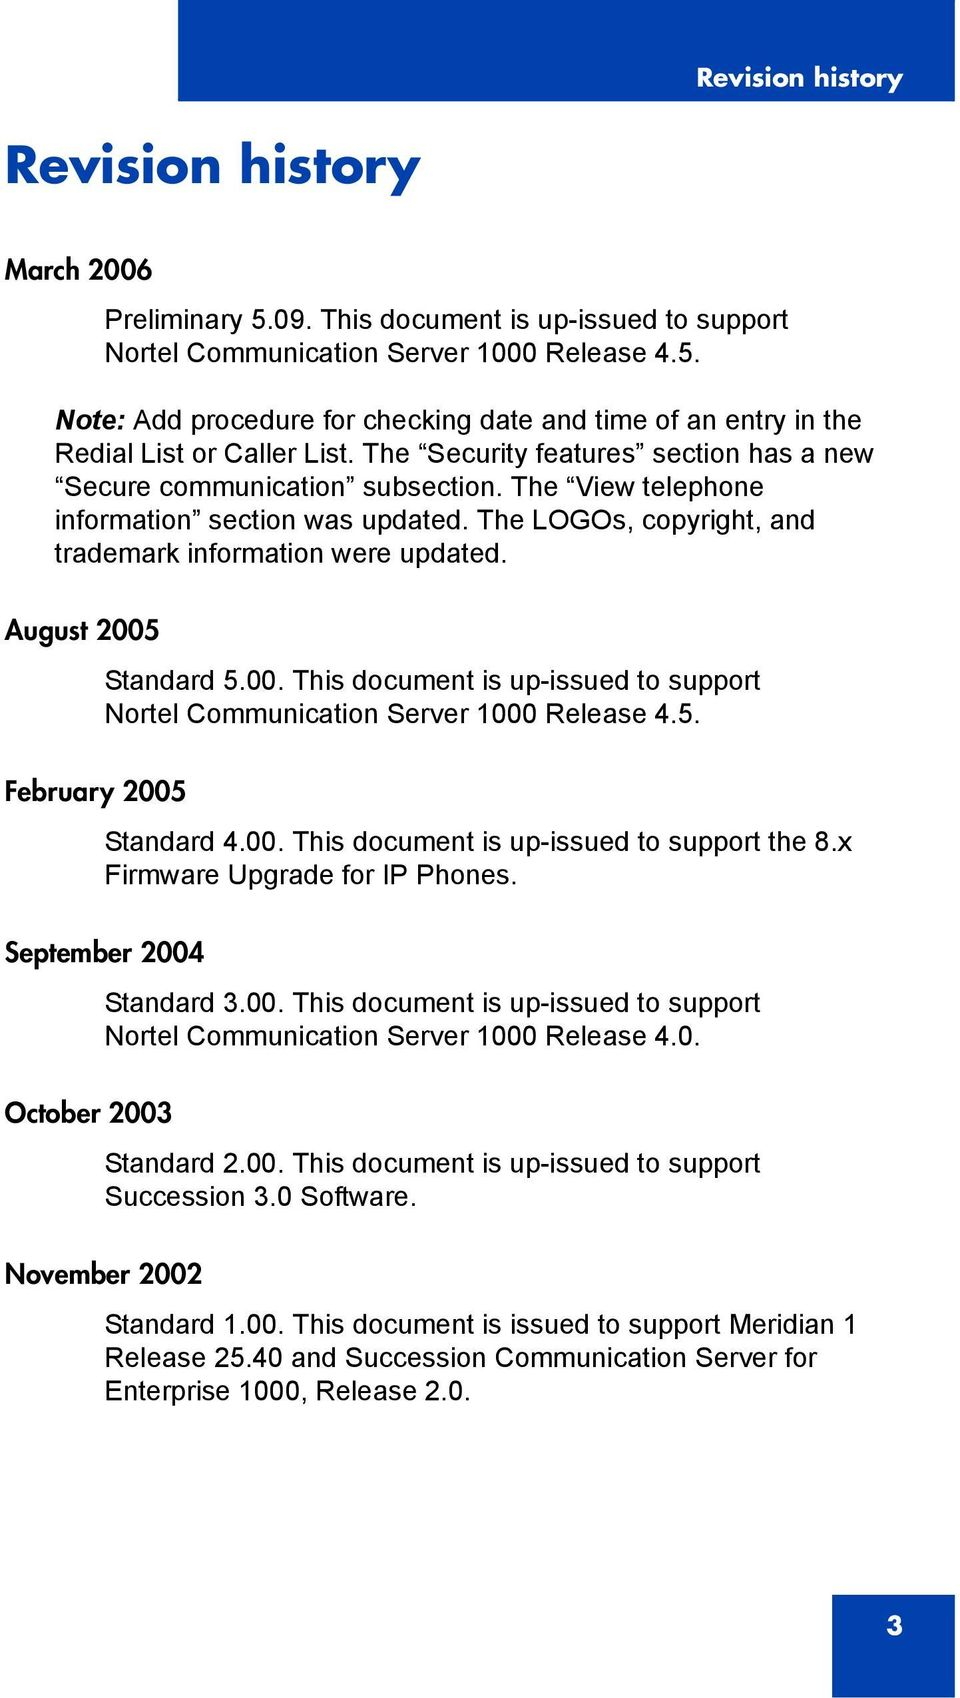 August 2005 February 2005 Standard 5.00. This document is up-issued to support Nortel Communication Server 1000 Release 4.5. Standard 4.00. This document is up-issued to support the 8.